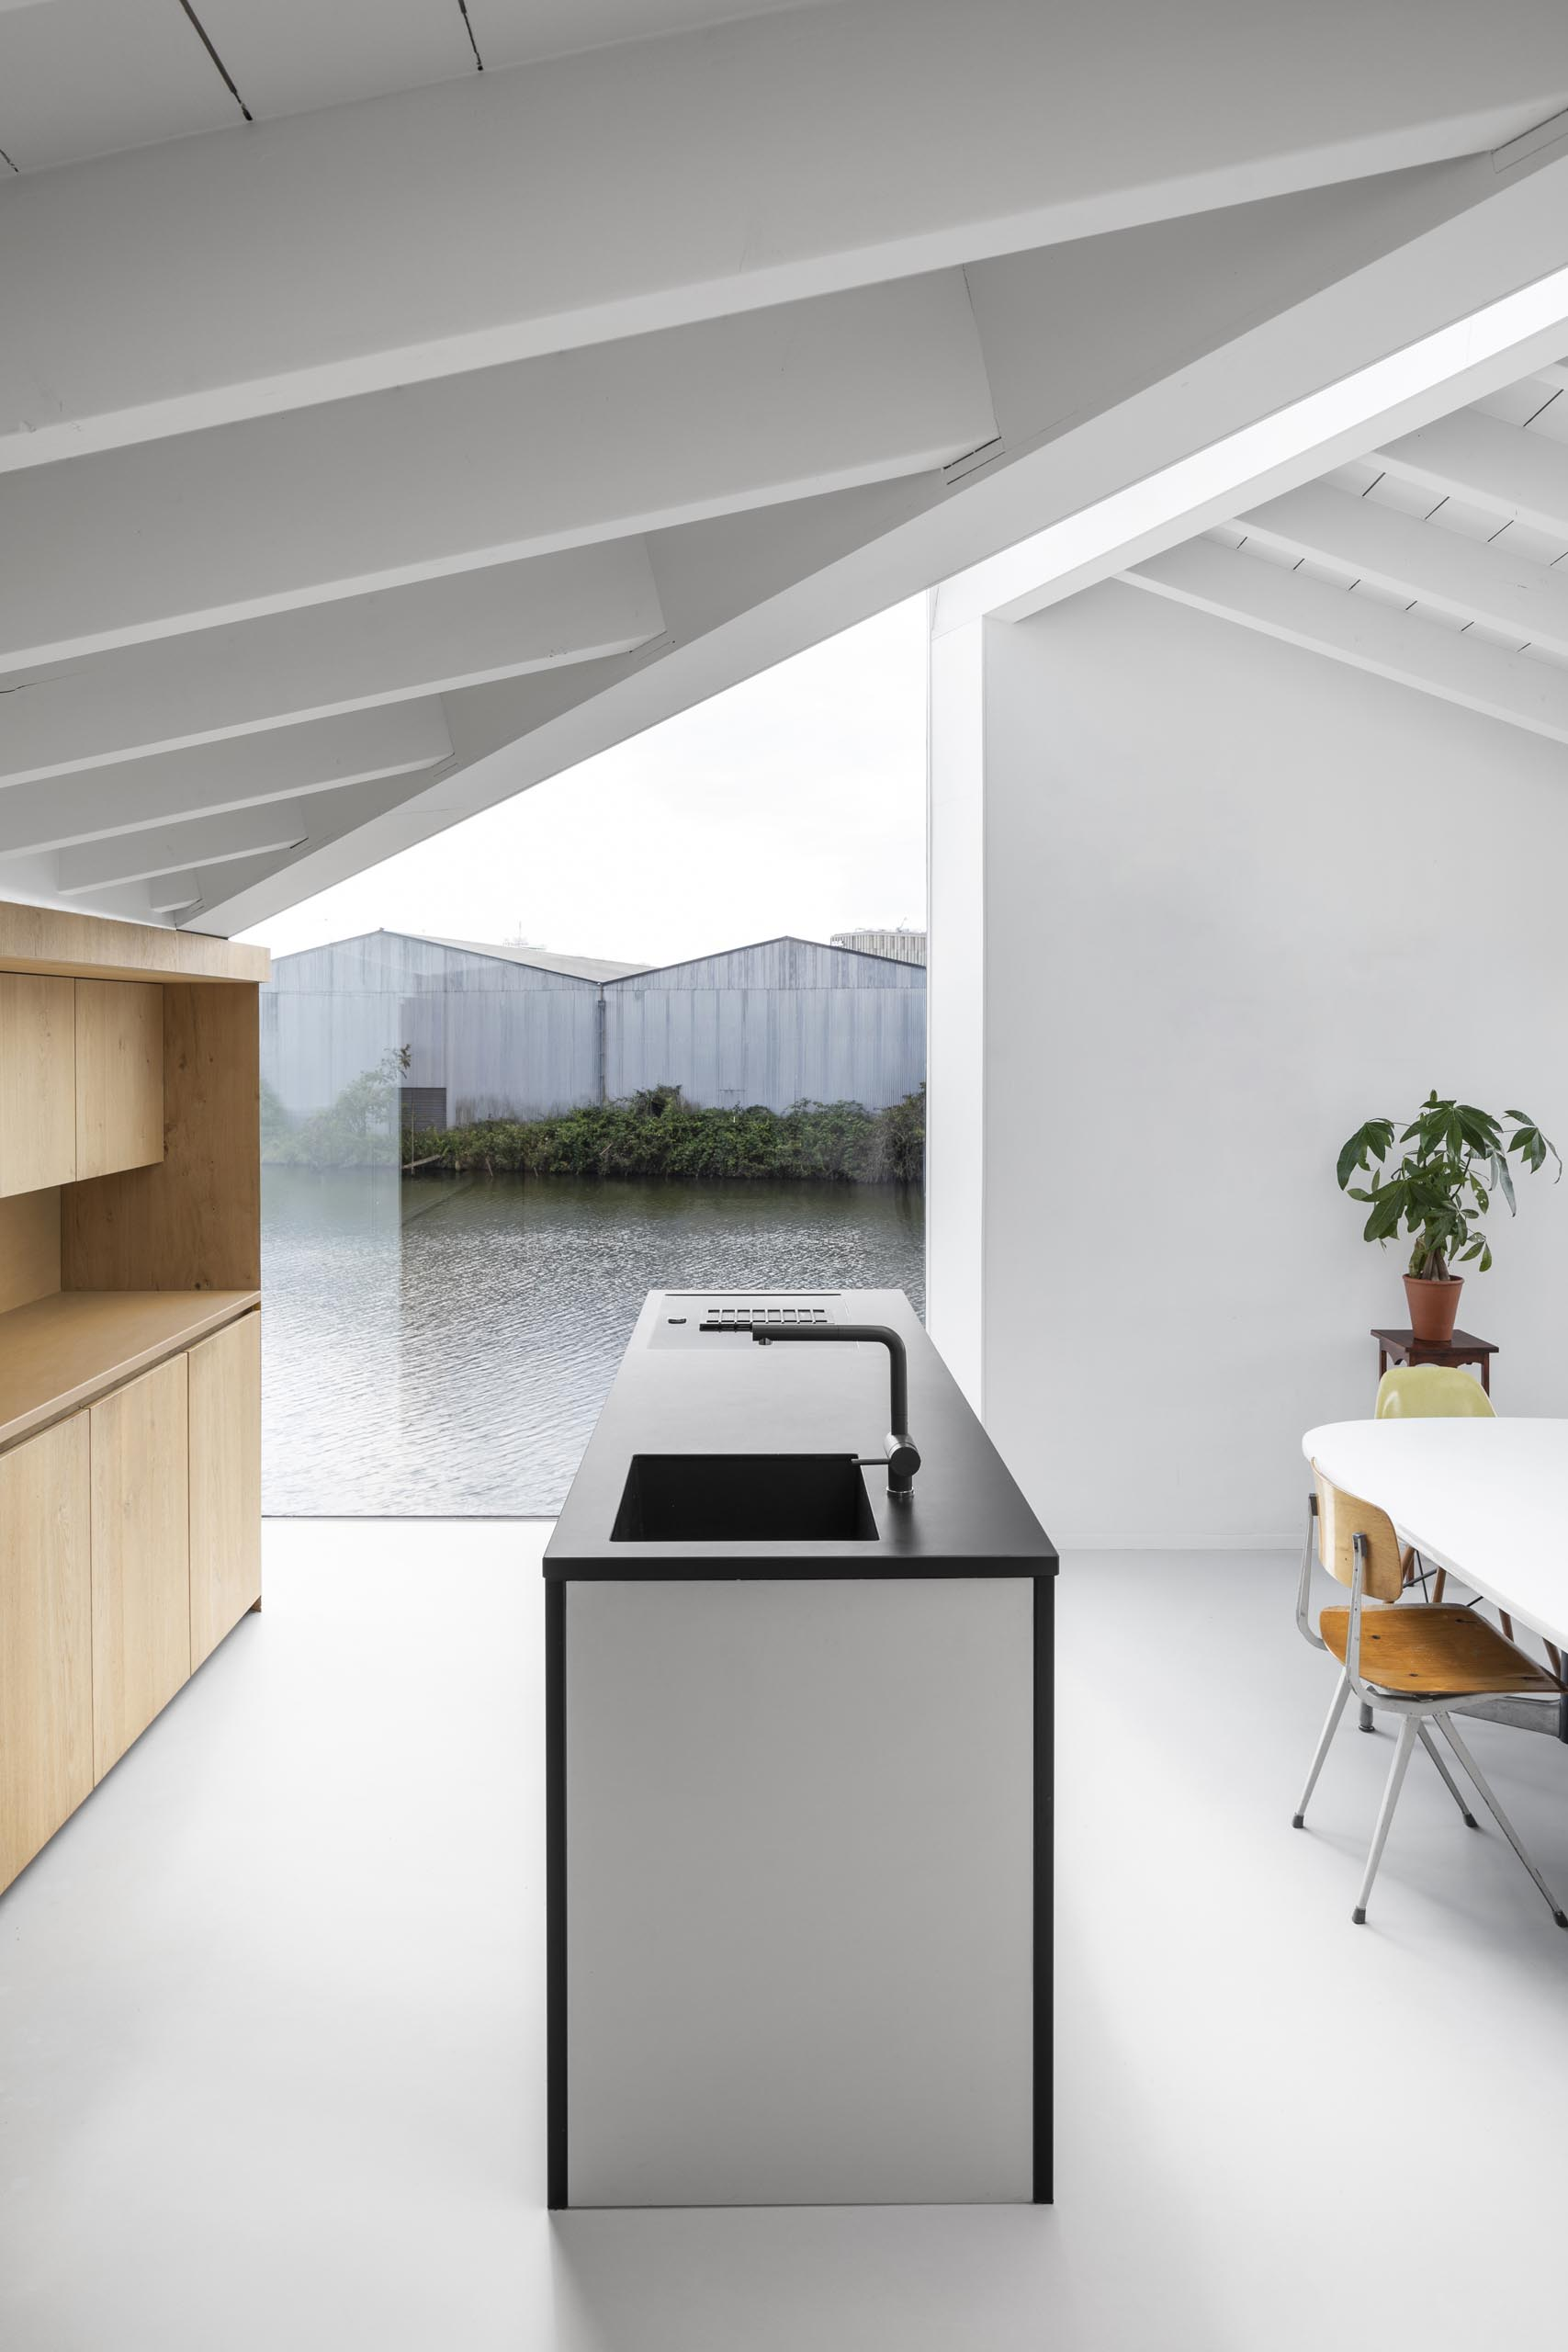 In the kitchen of a modern float home, a wall of wood cabinets is complemented by an island with a black countertop. An abundance of windows helps to keep the interior bright and open.